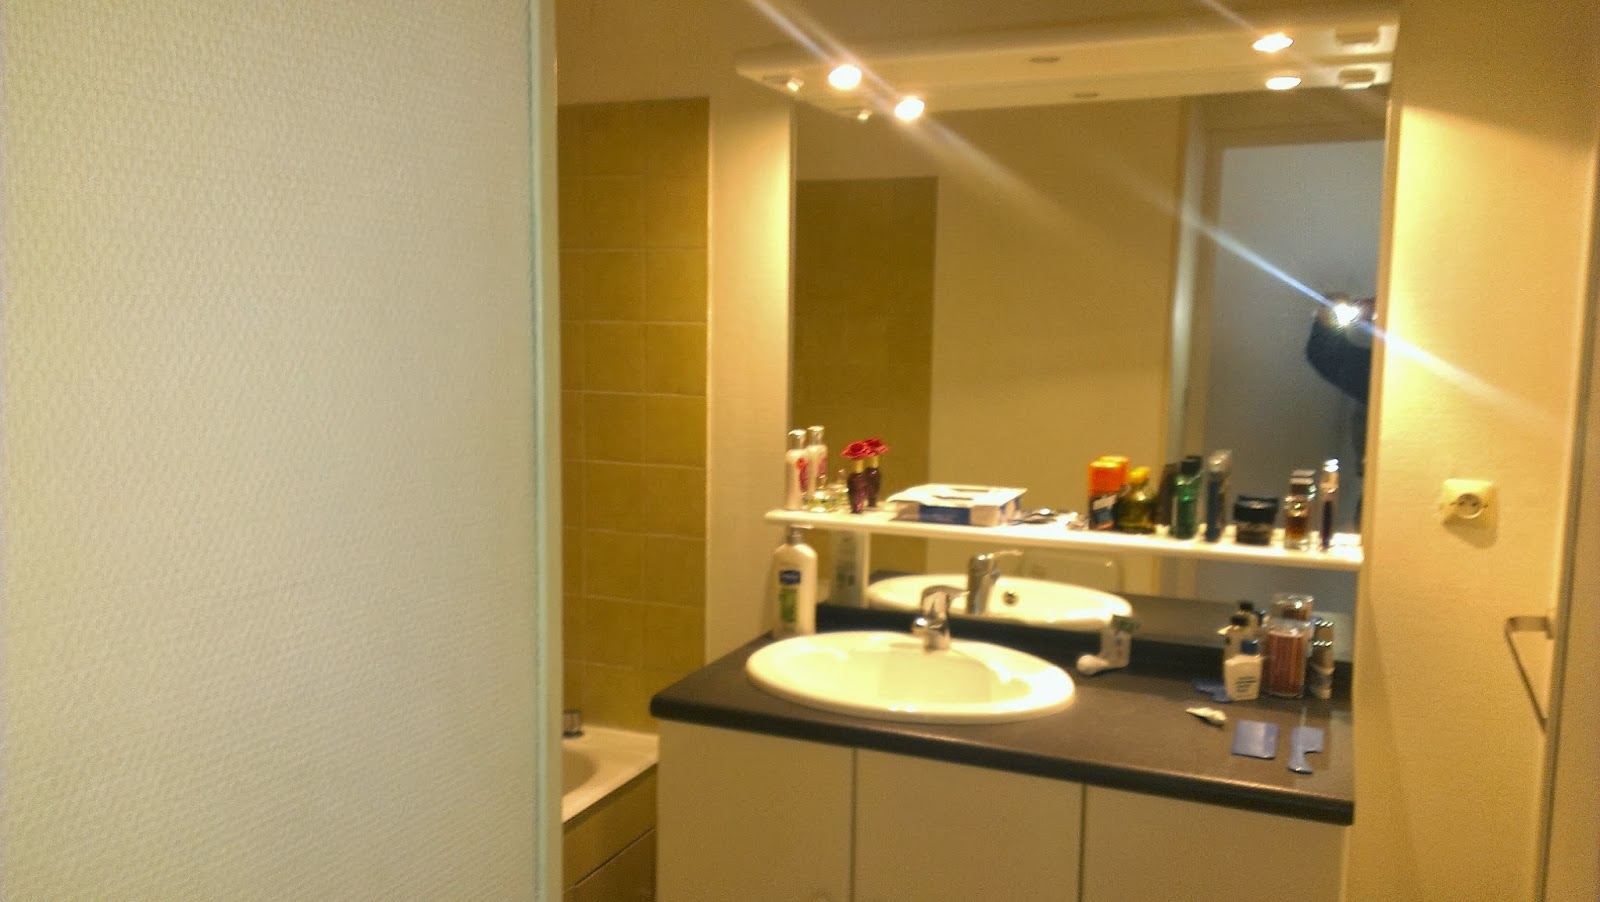 awkward shaped bathroom pay no attention to the person in the mirror